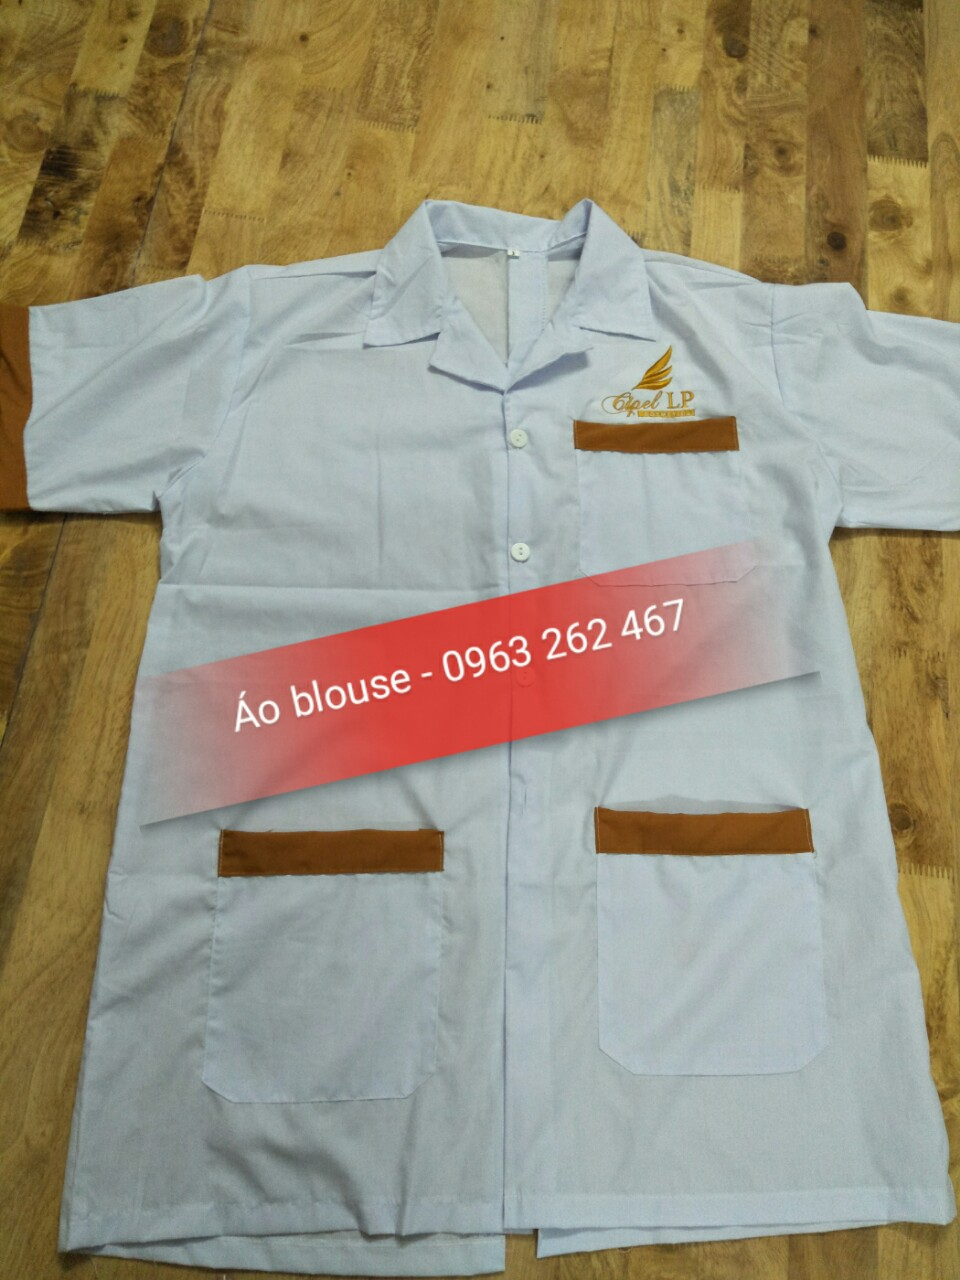 ao blouse co san tai sho